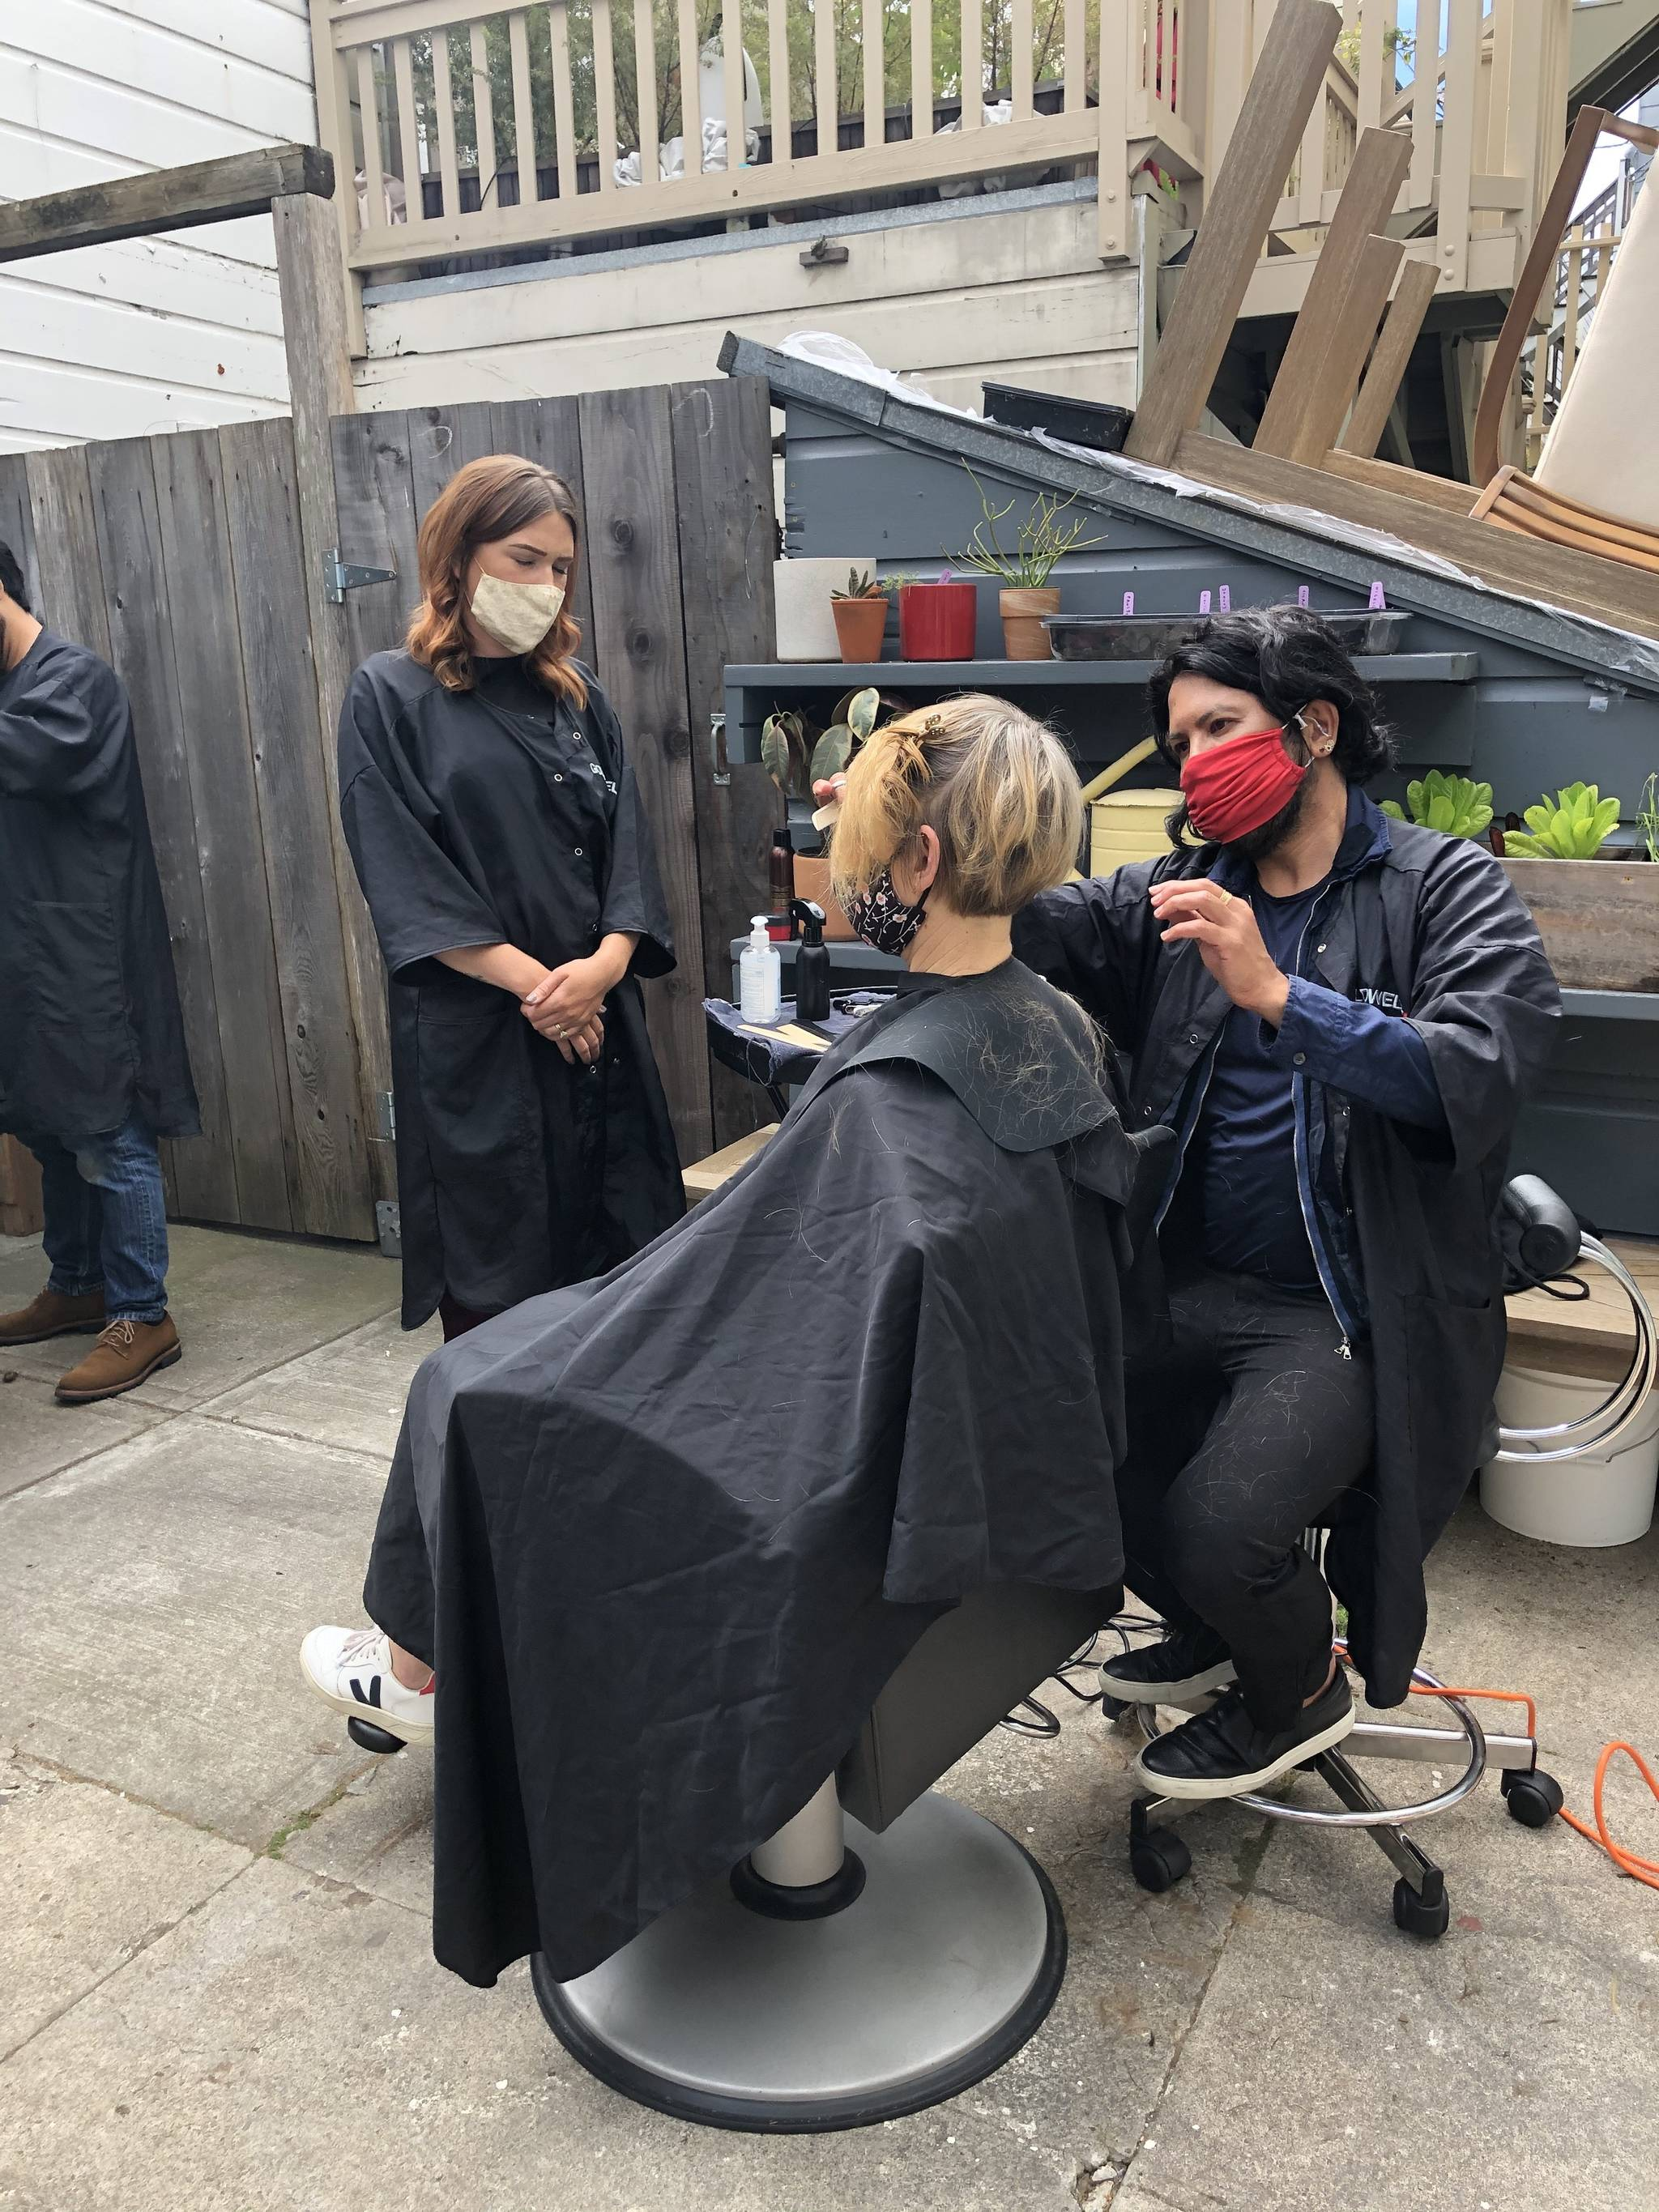 Hector Estrada, senior stylist at Studio Estrada, works with his assistant Regan Mellos on a client on the back patio. (Courtesy photo)